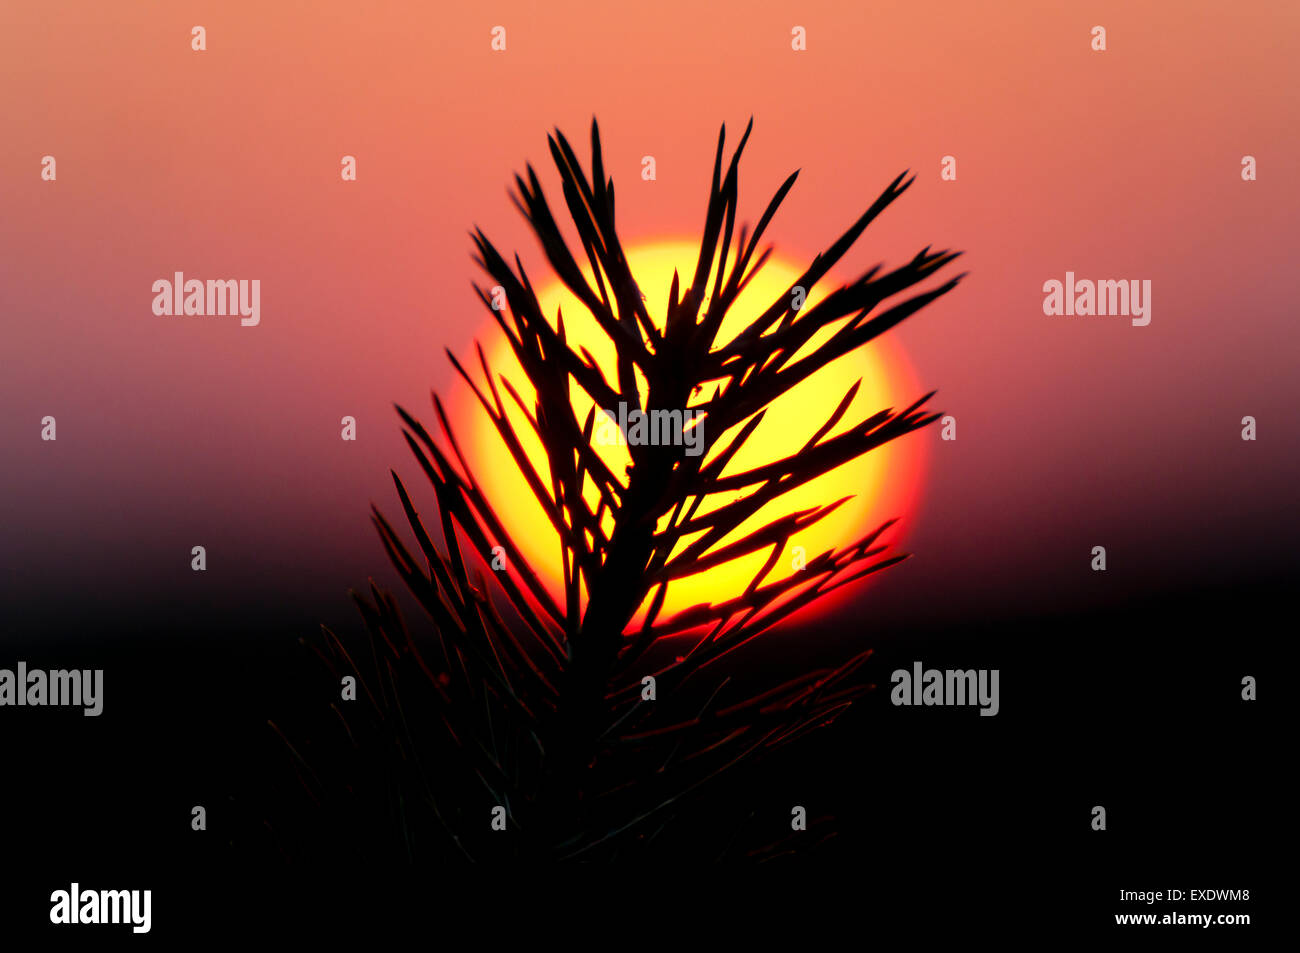 Conifer Branch Sunset - Stock Image